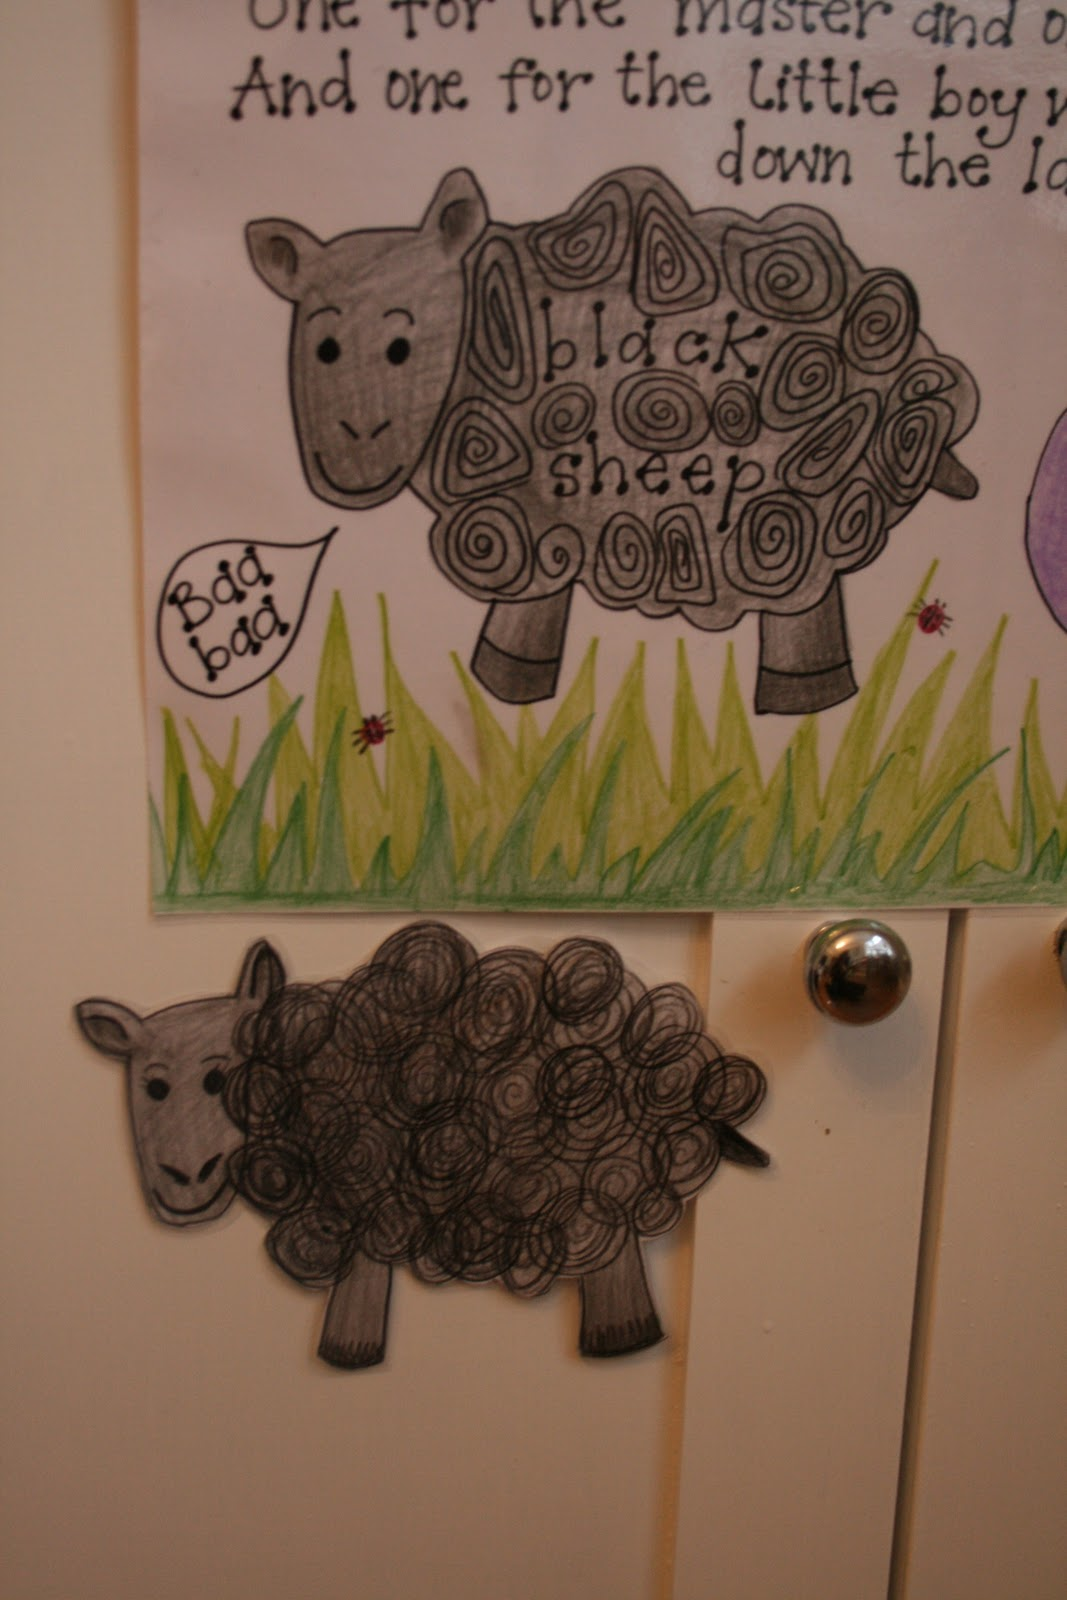 Baa Baa Black Sheep Song Sheet